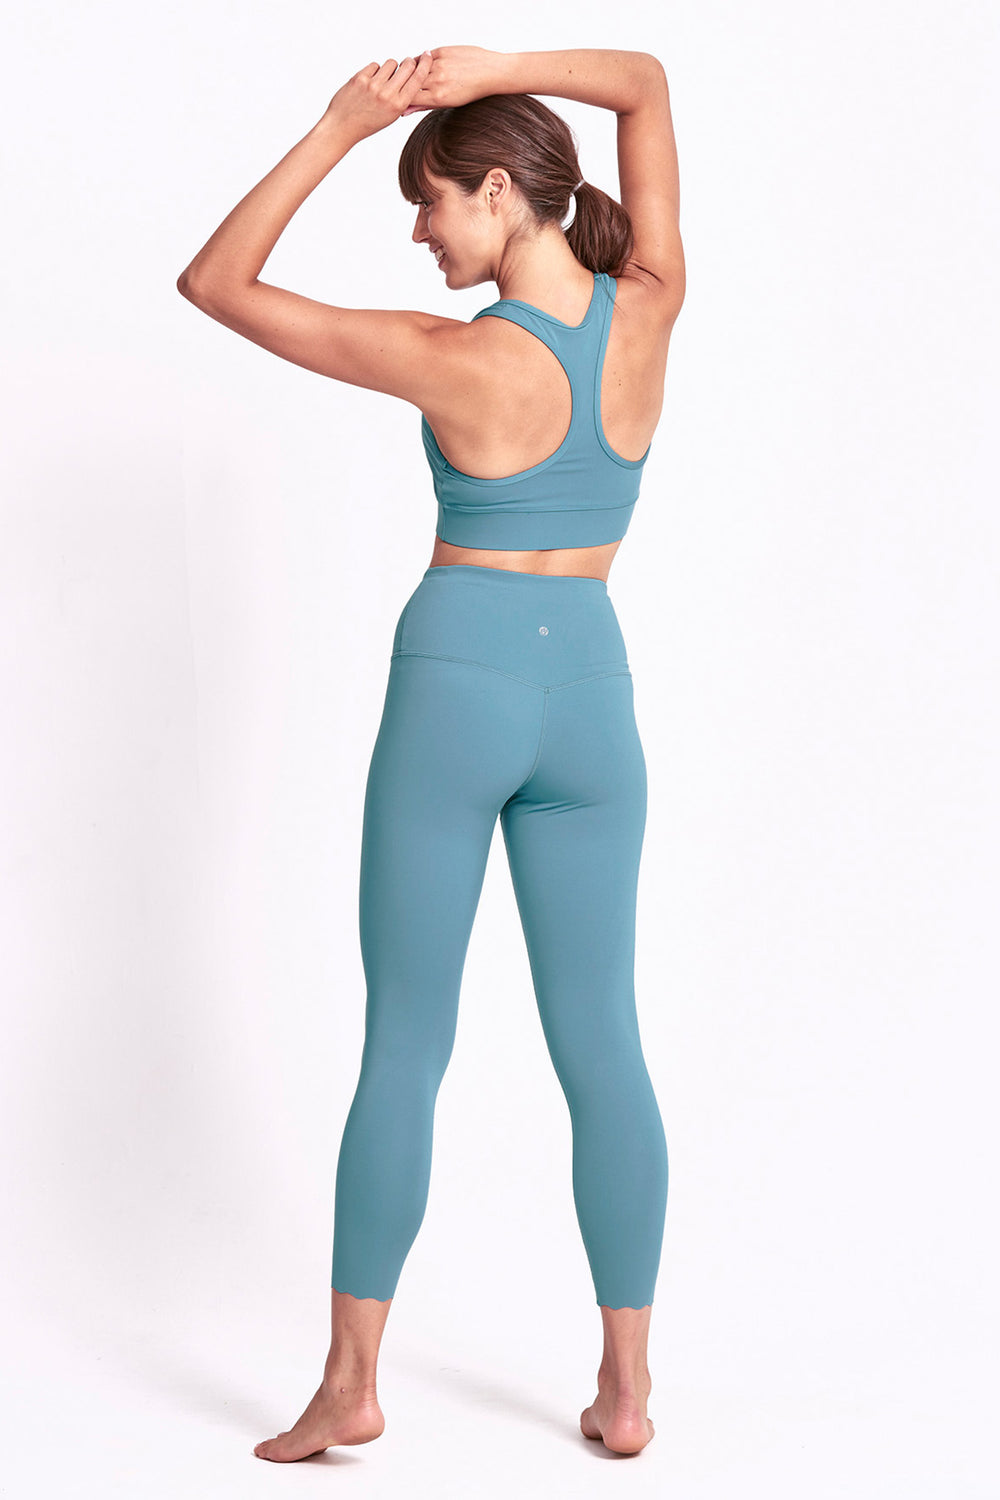 Scallop Legging 7/8 - Mineral Teal